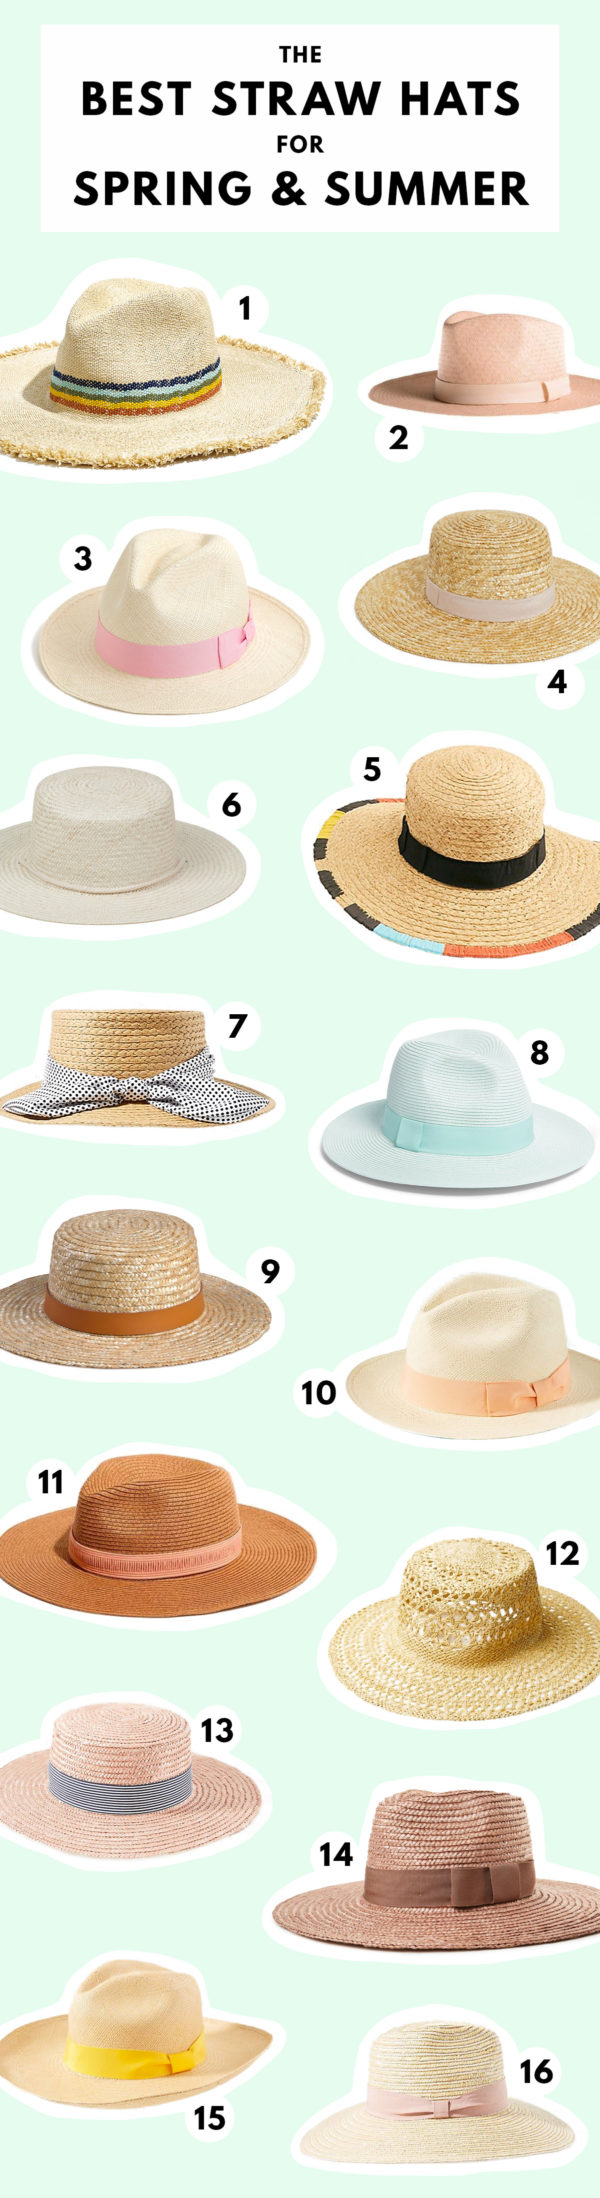 The Best Straw Hats for Spring + Summer